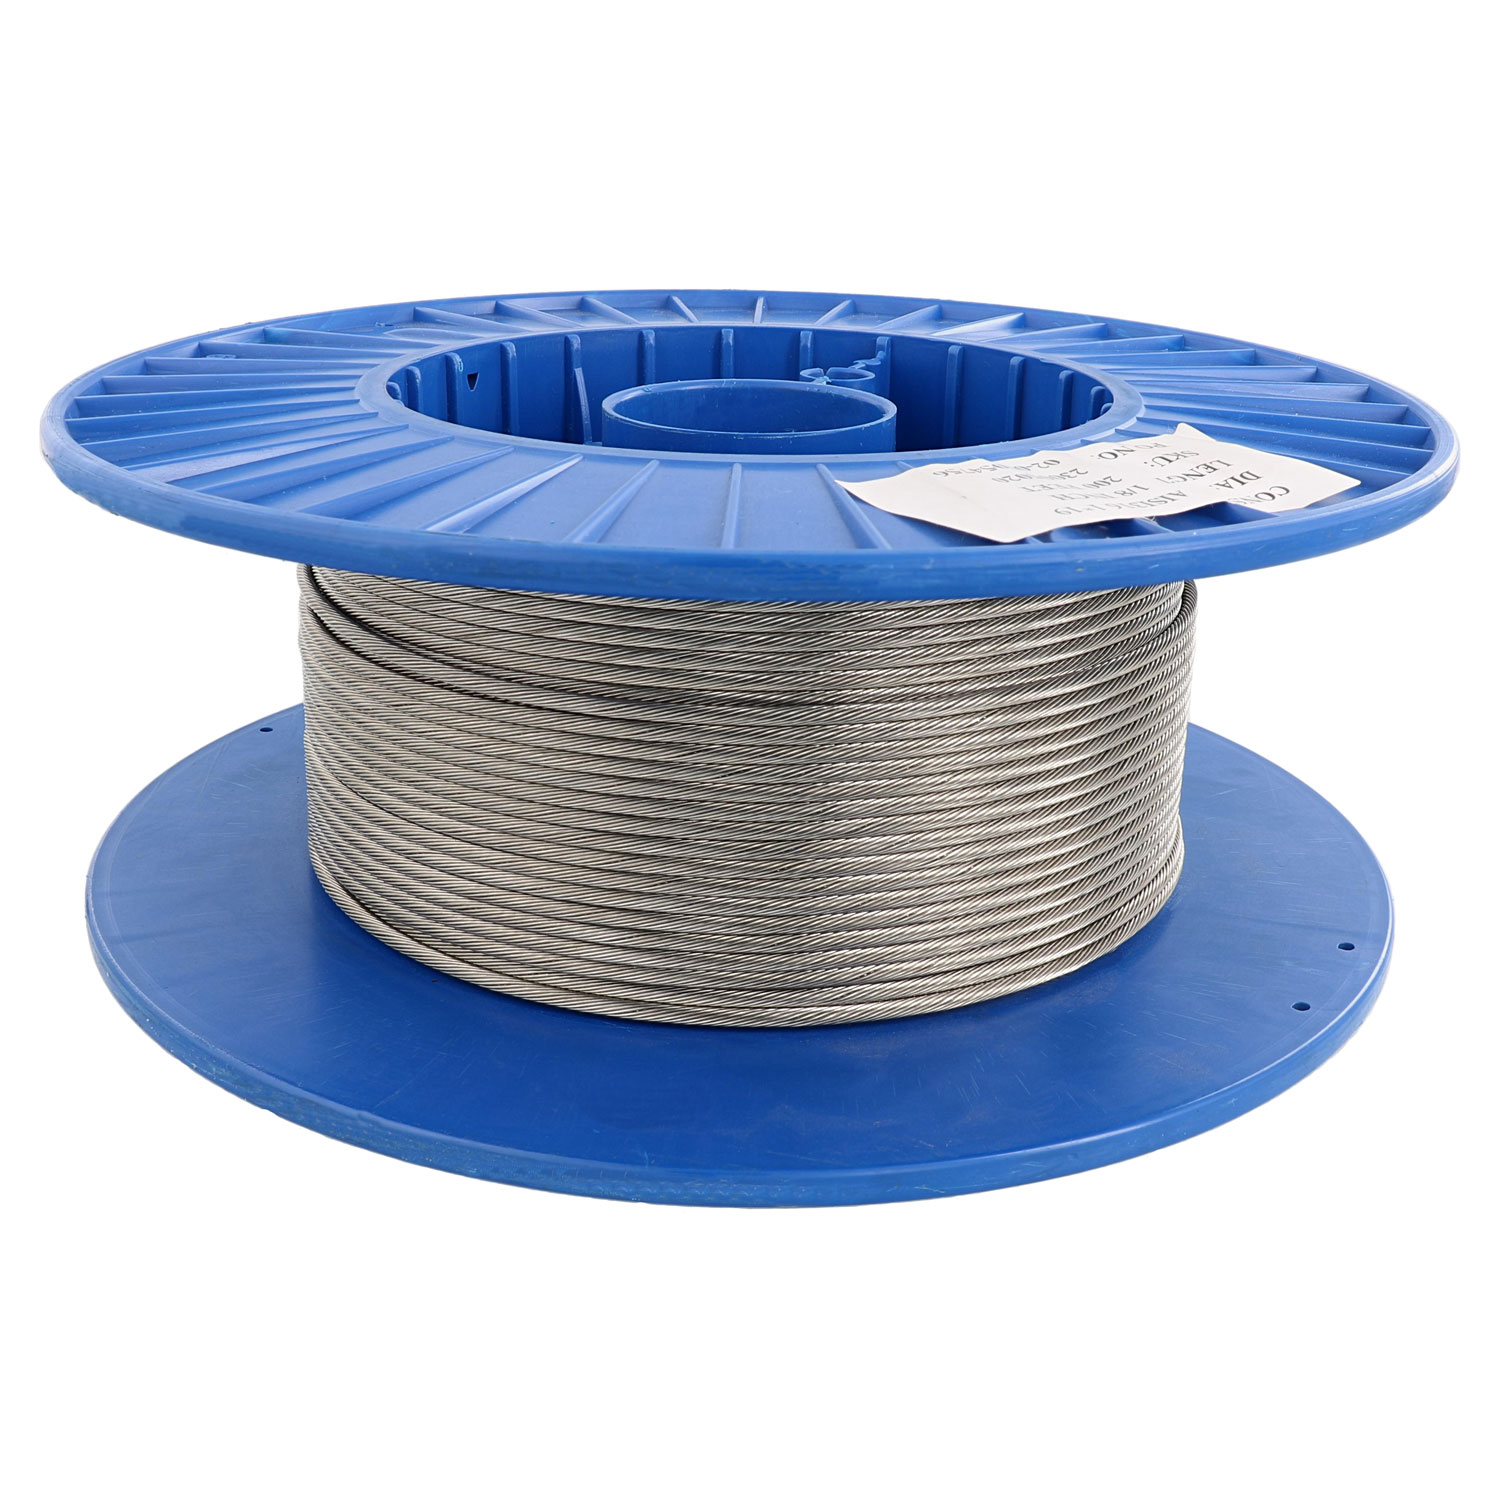 1 8 Quot X 500 1x19 Type 316 Stainless Steel Cable Reel